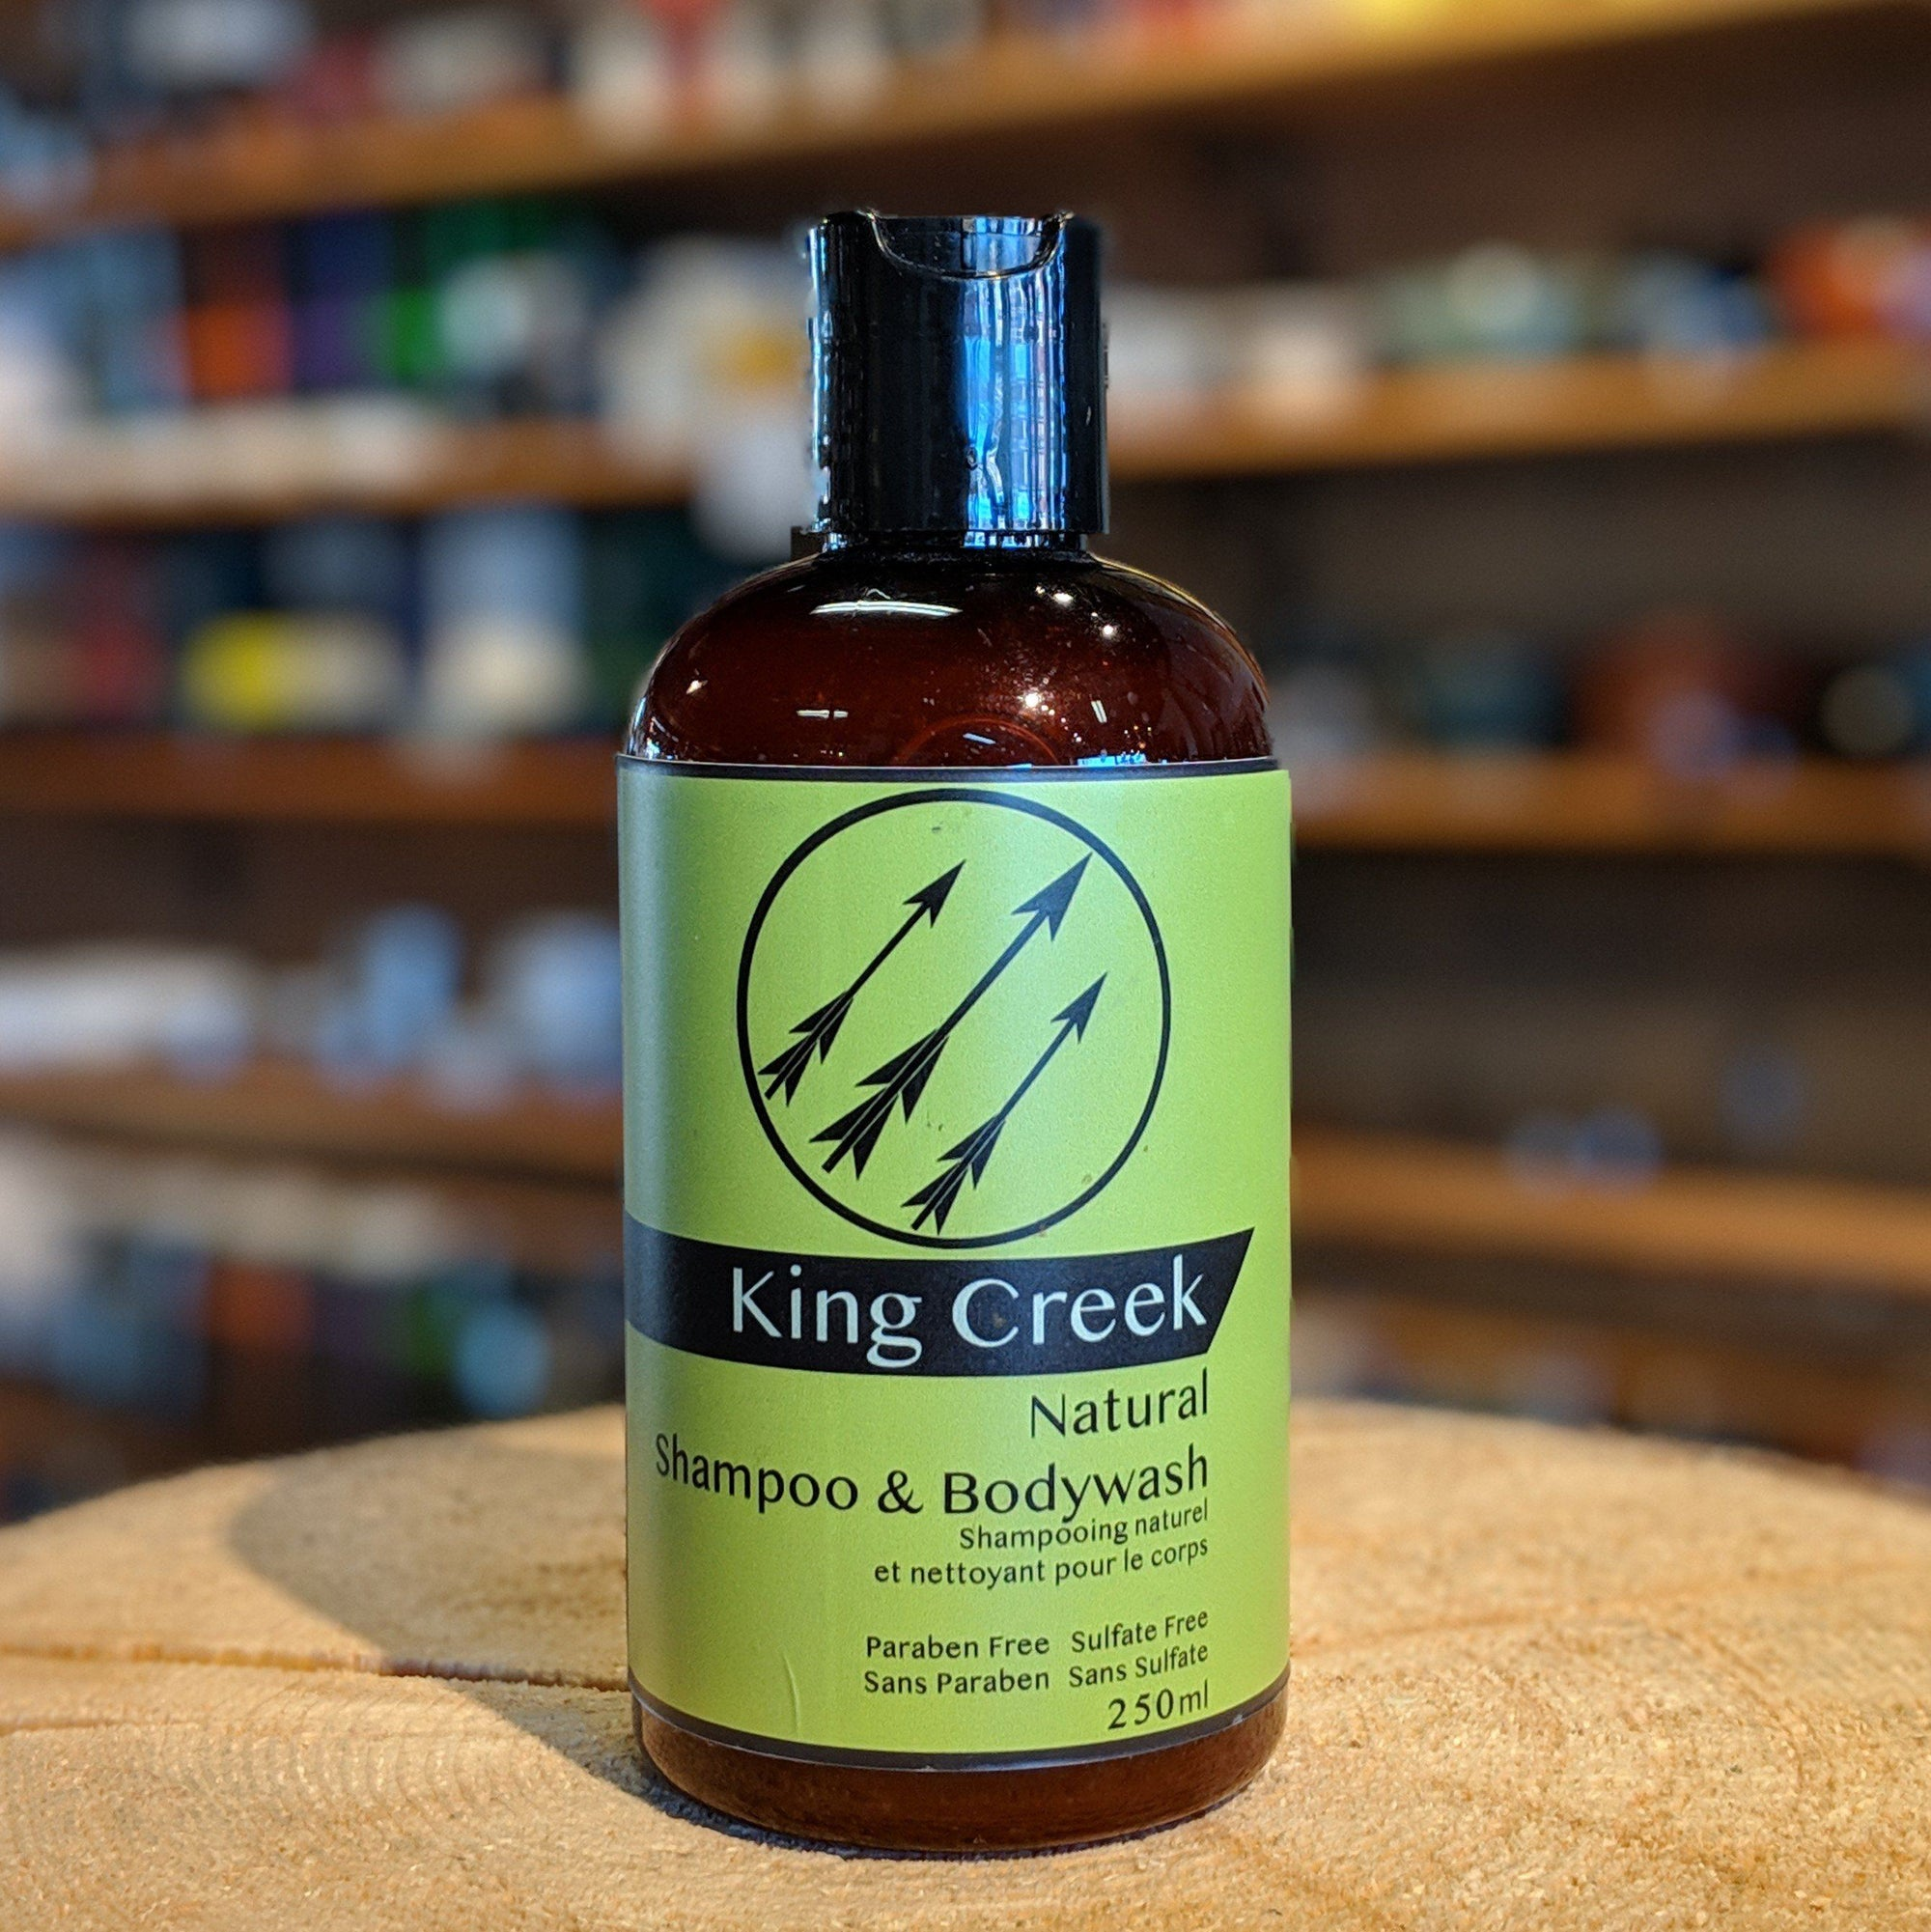 Three Arrows Shampoo & Bodywash King Creek 250ml